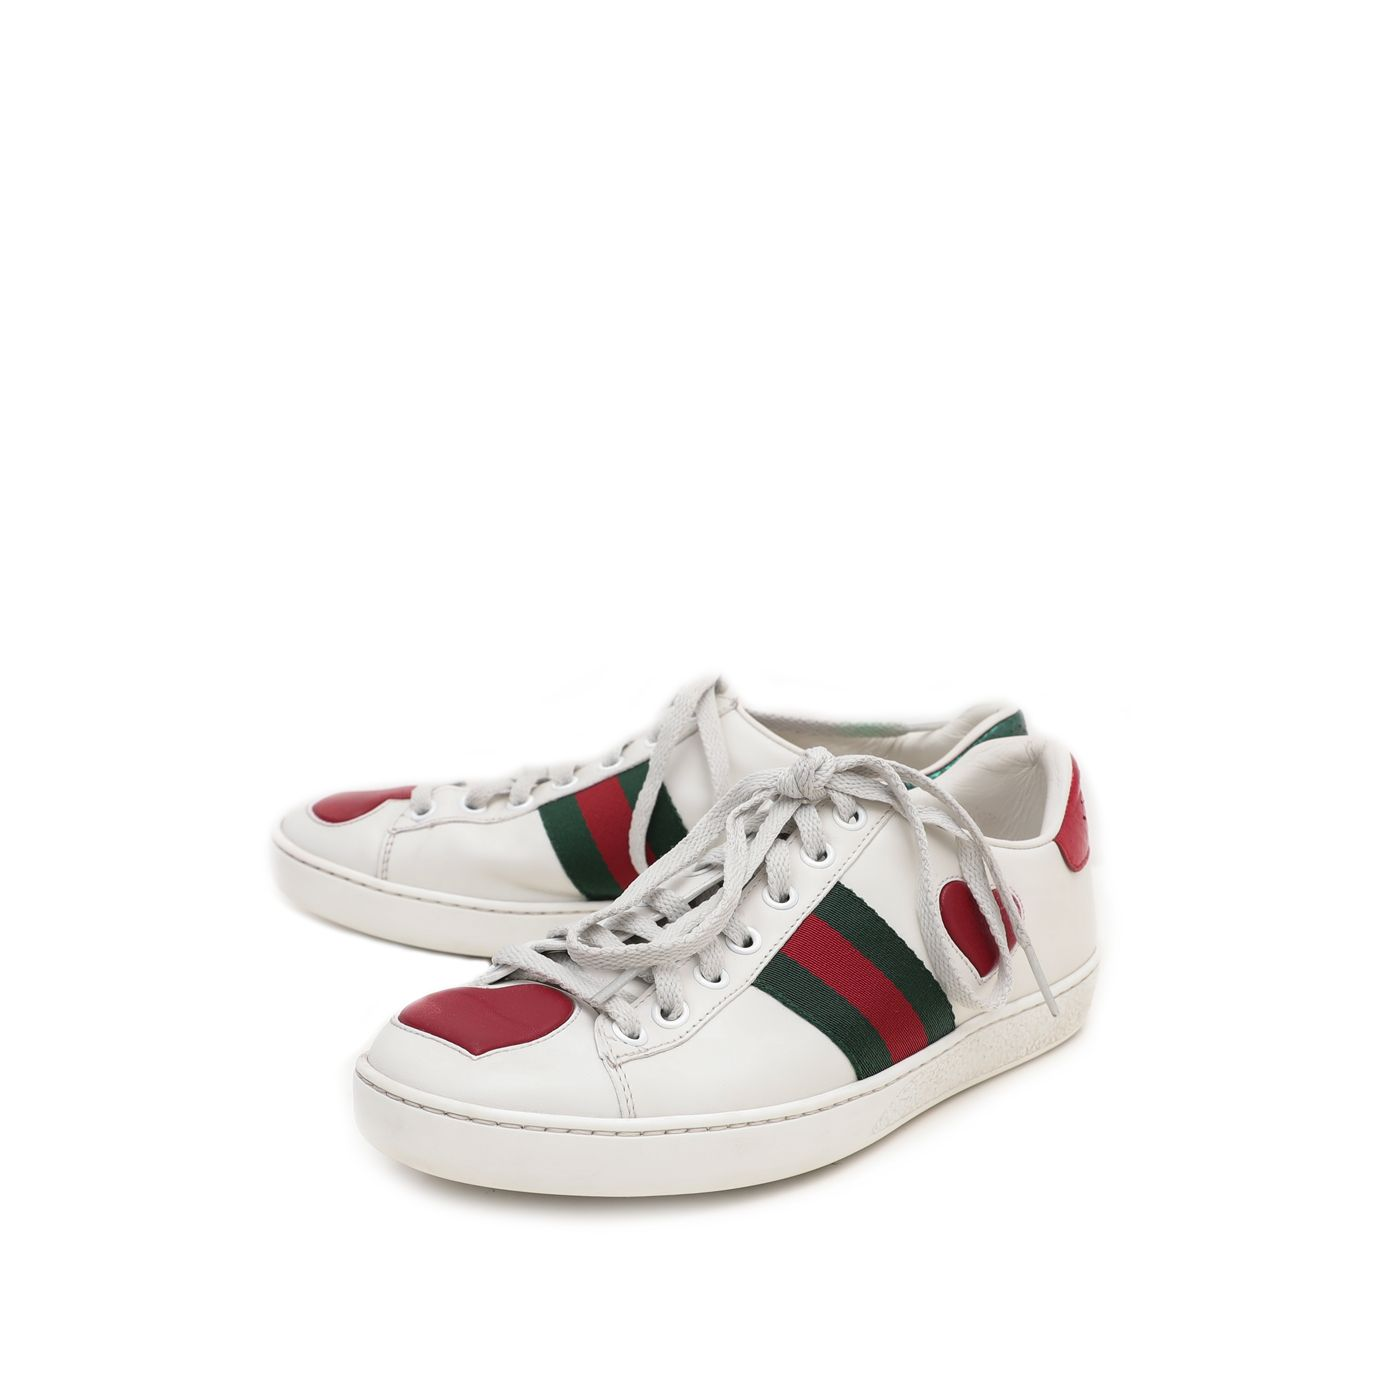 Gucci Tricolor Ace Heart Sneakers 36